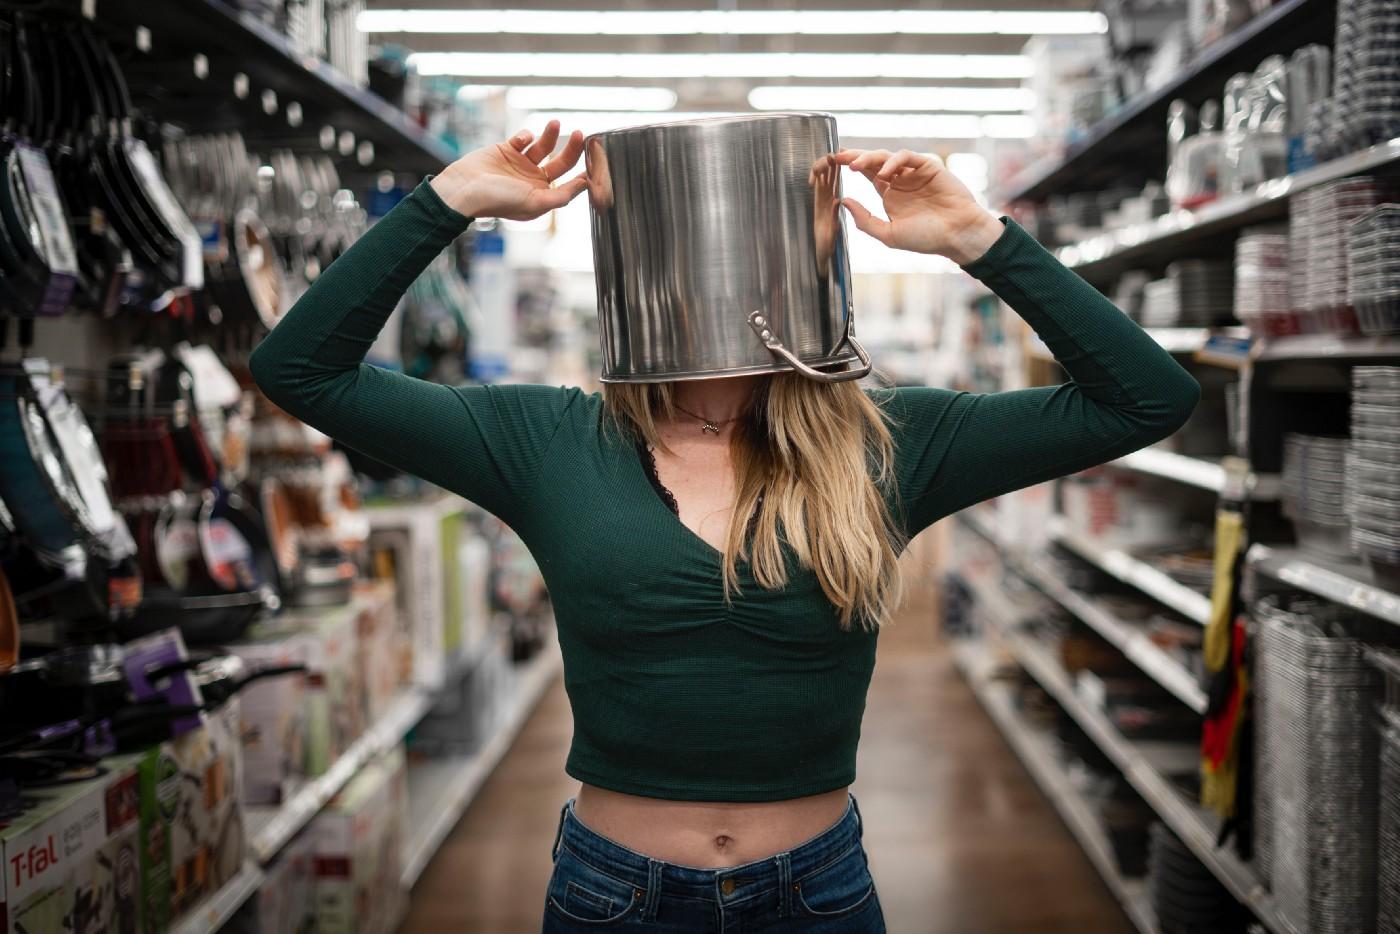 Woman standing in supermarket aisle with a pot on her head